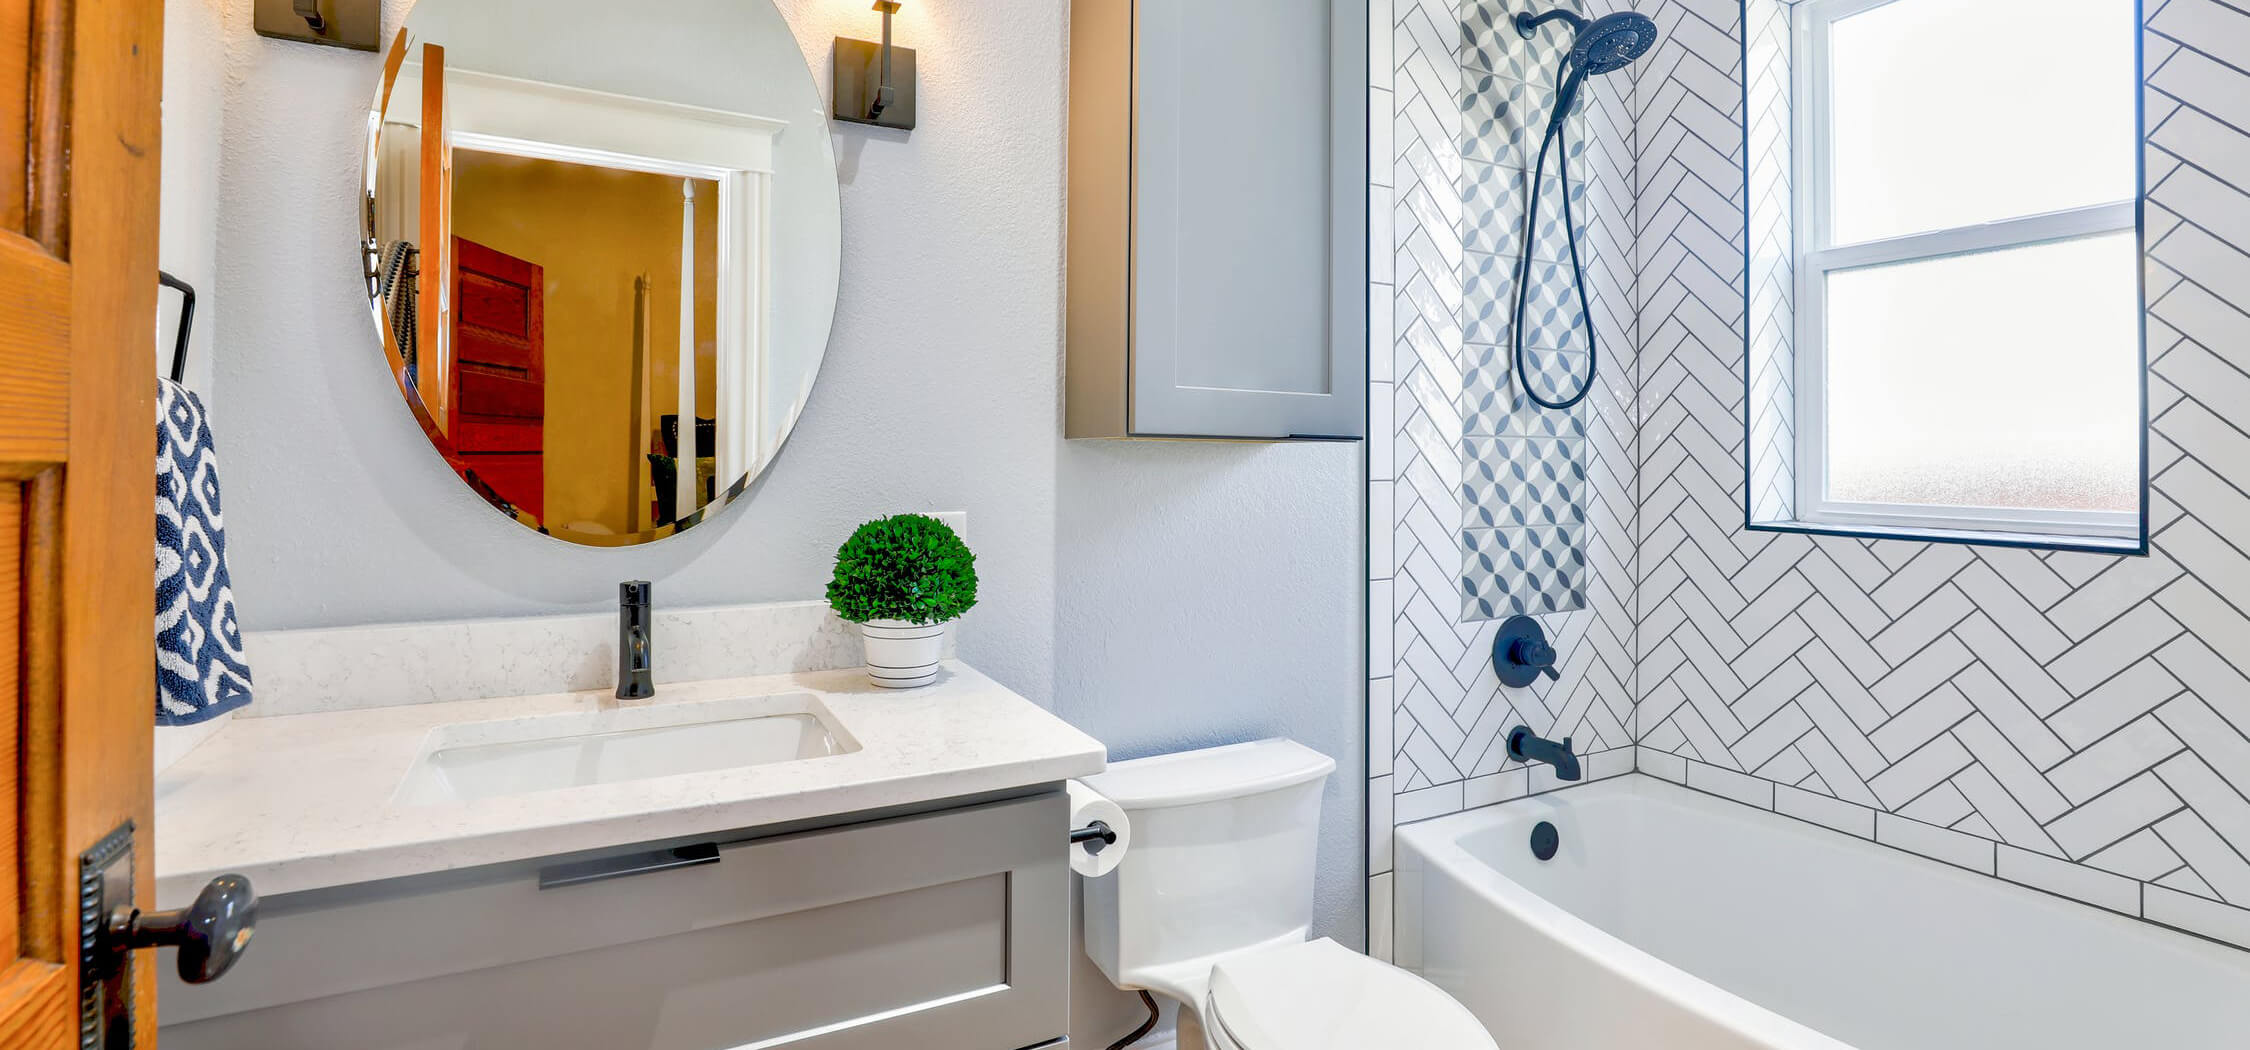 how-to-update-your-bathroom-on-the-cheap by-resurfacing-5.jpeg